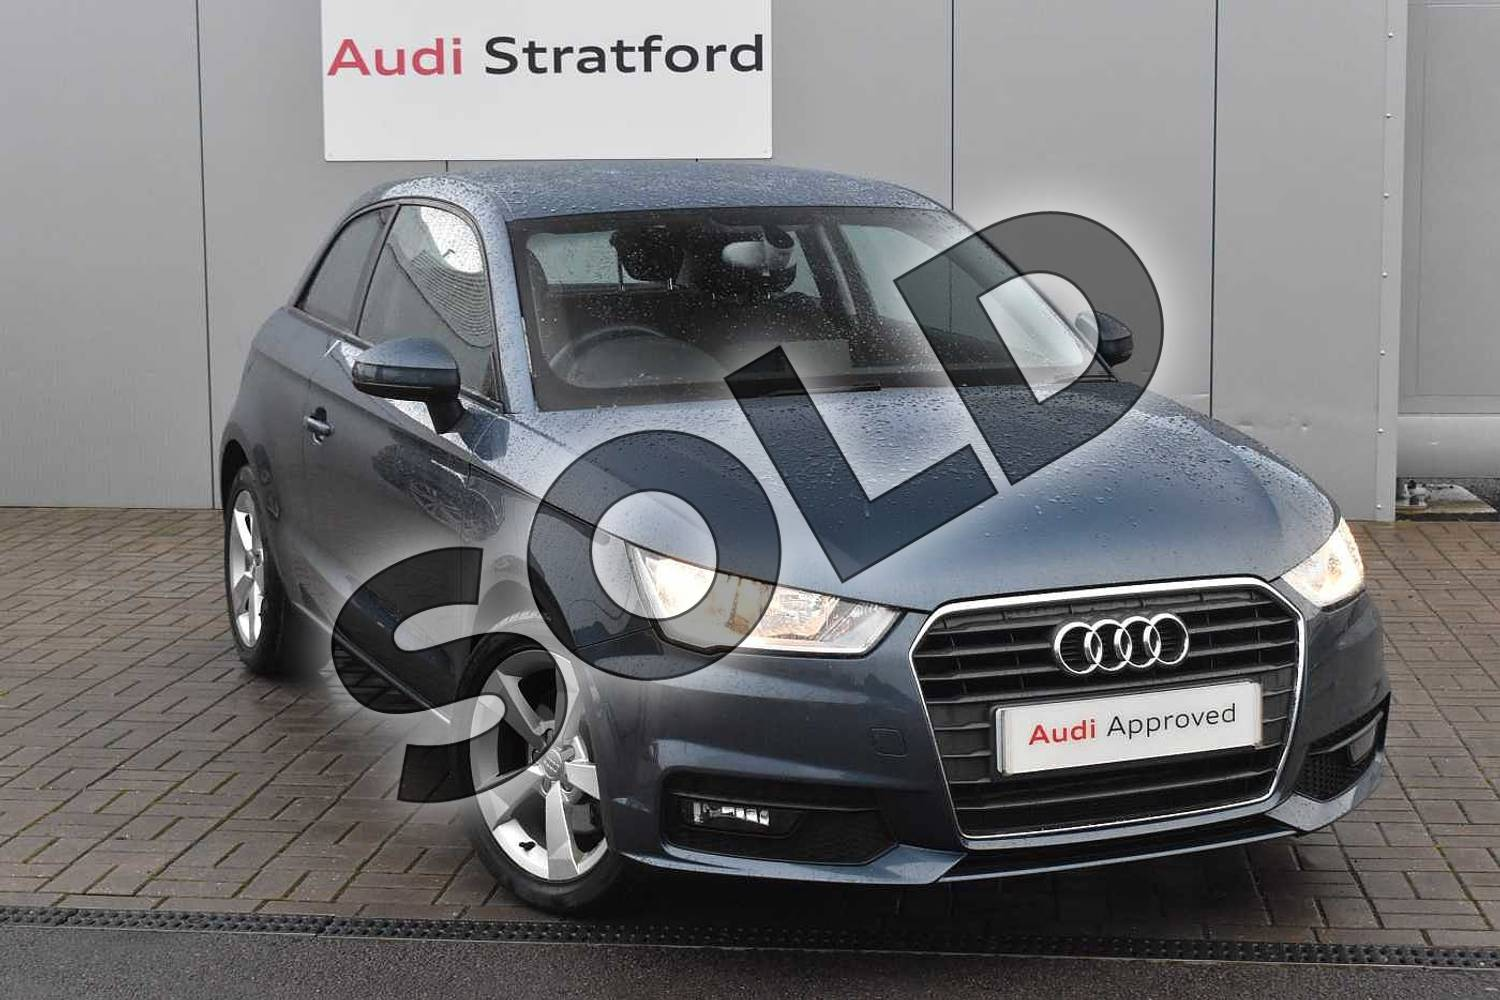 2017 Audi A1 Hatchback 1.4 TFSI Sport 3dr in Utopia Blue Metallic at Stratford Audi